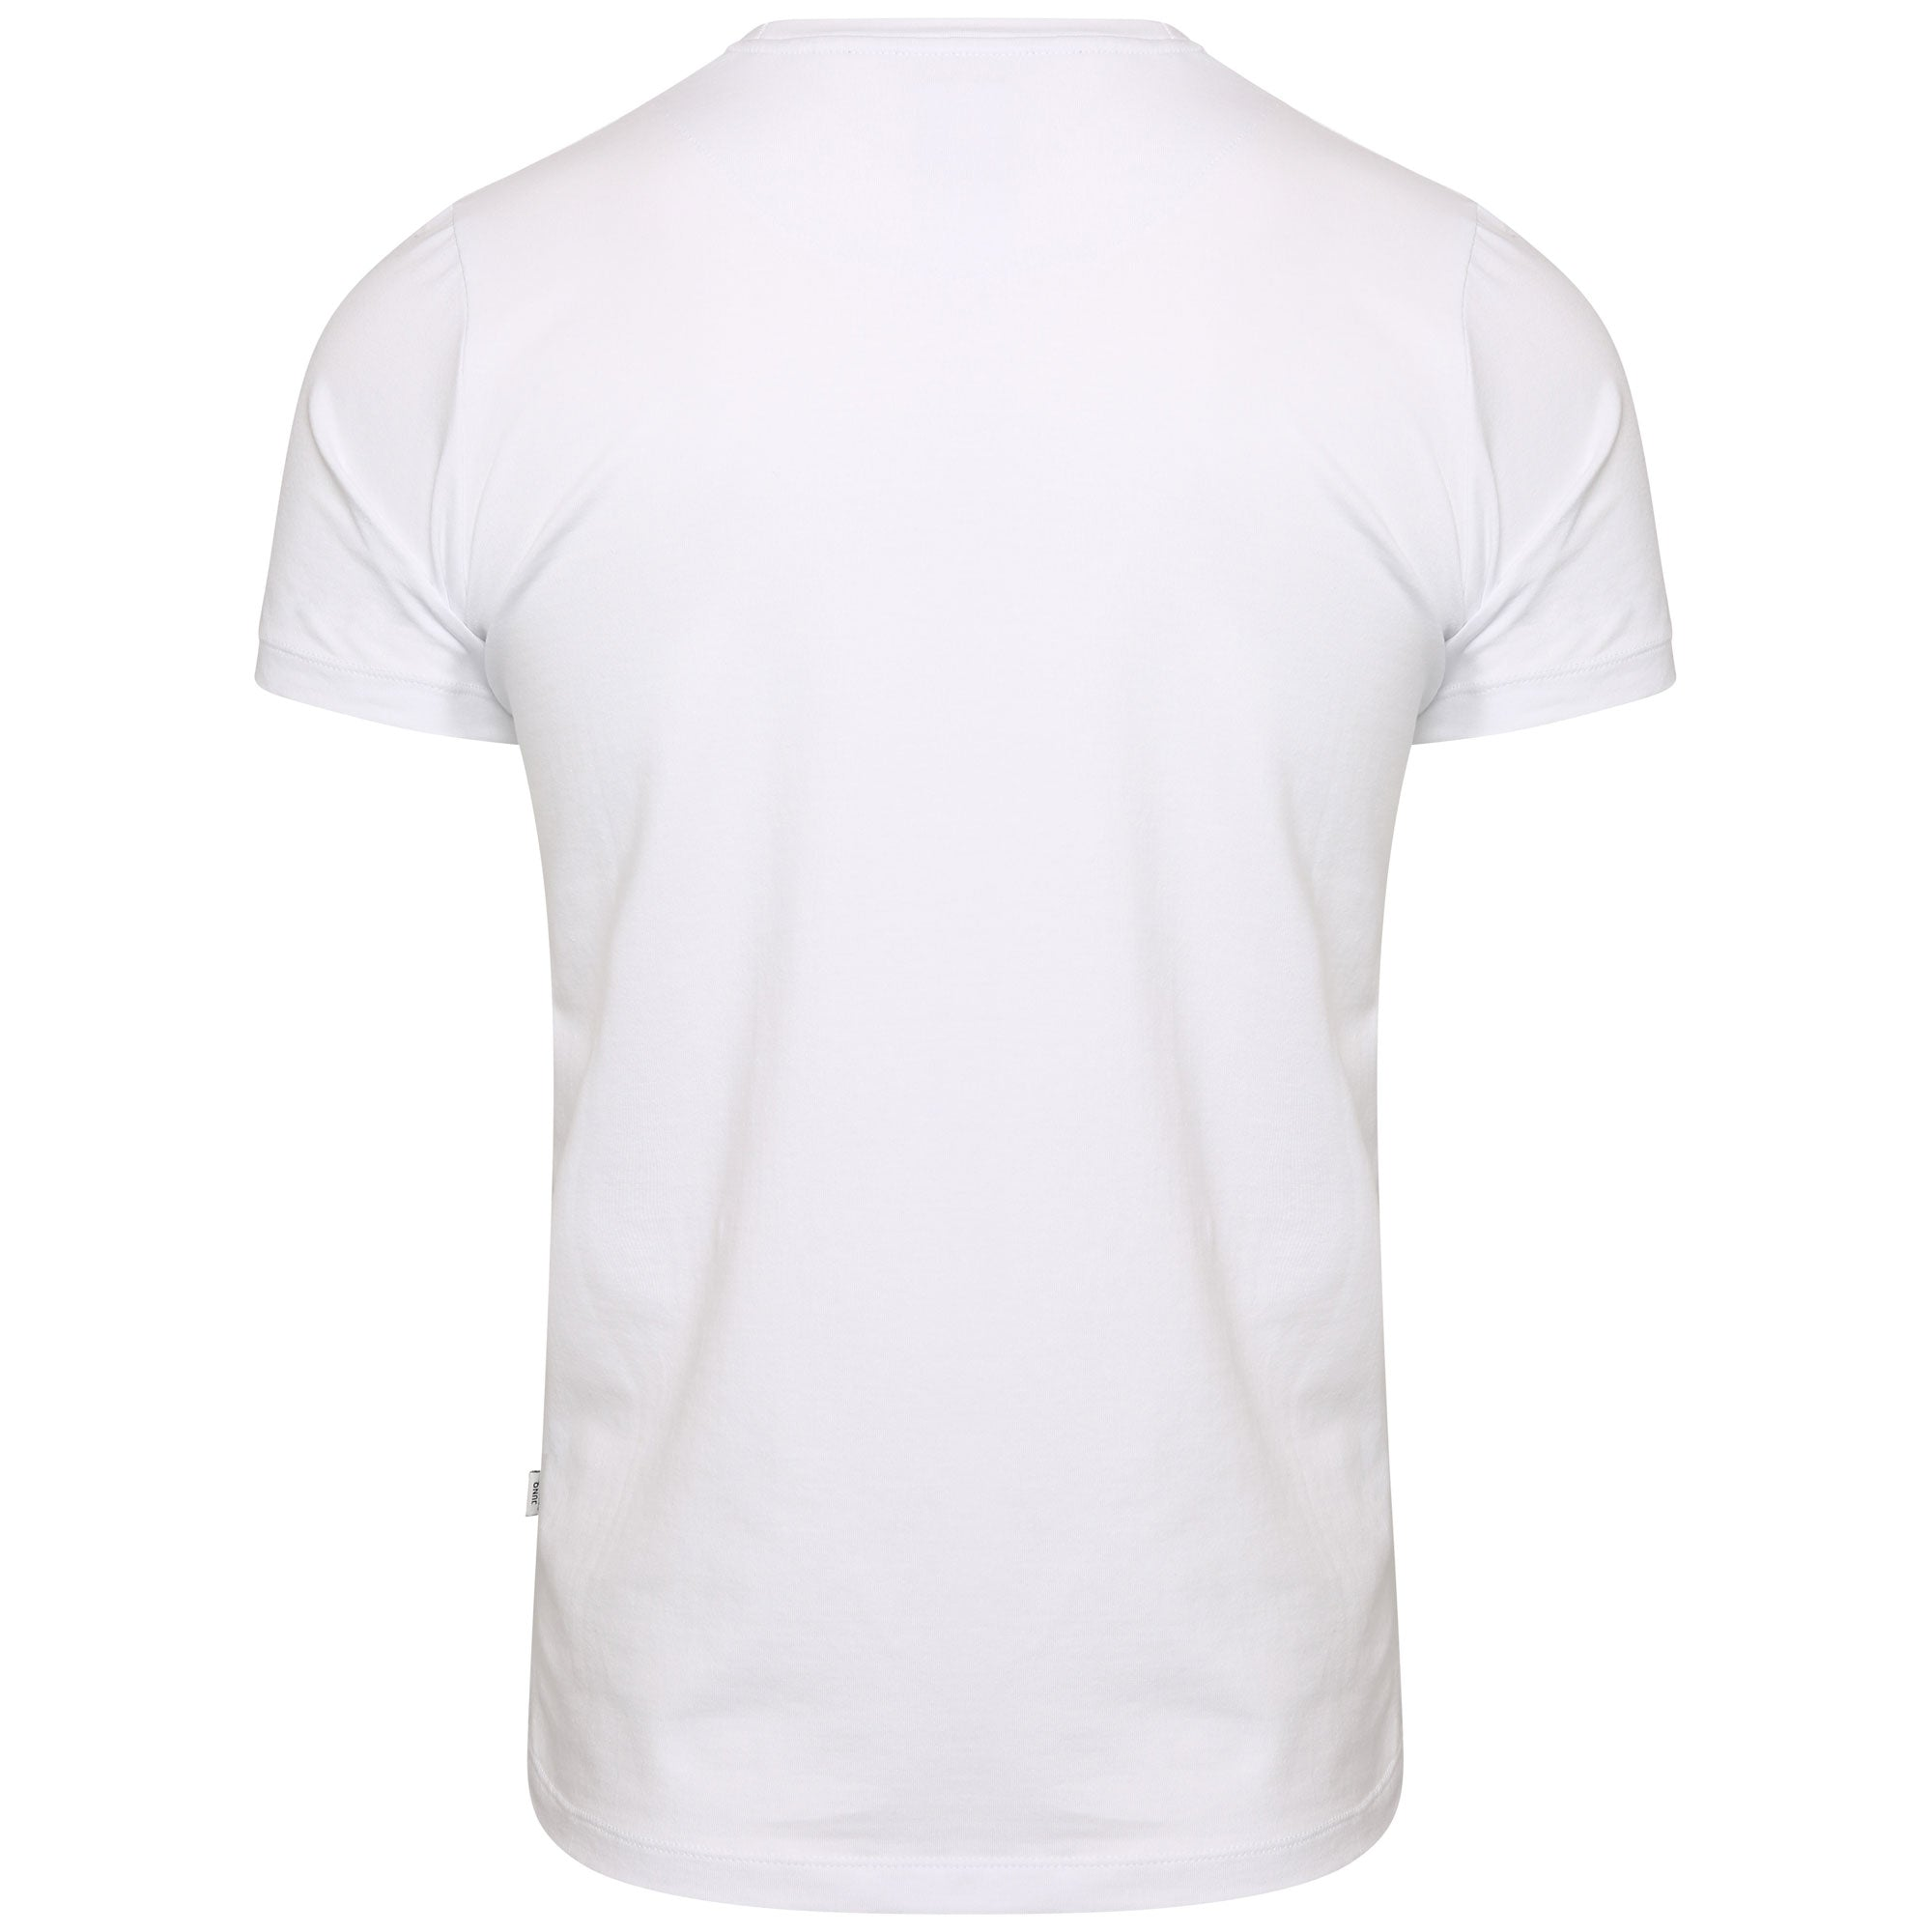 Style: Anhur 99 Luxury Crew Neck T-Shirt - White - Junq Couture